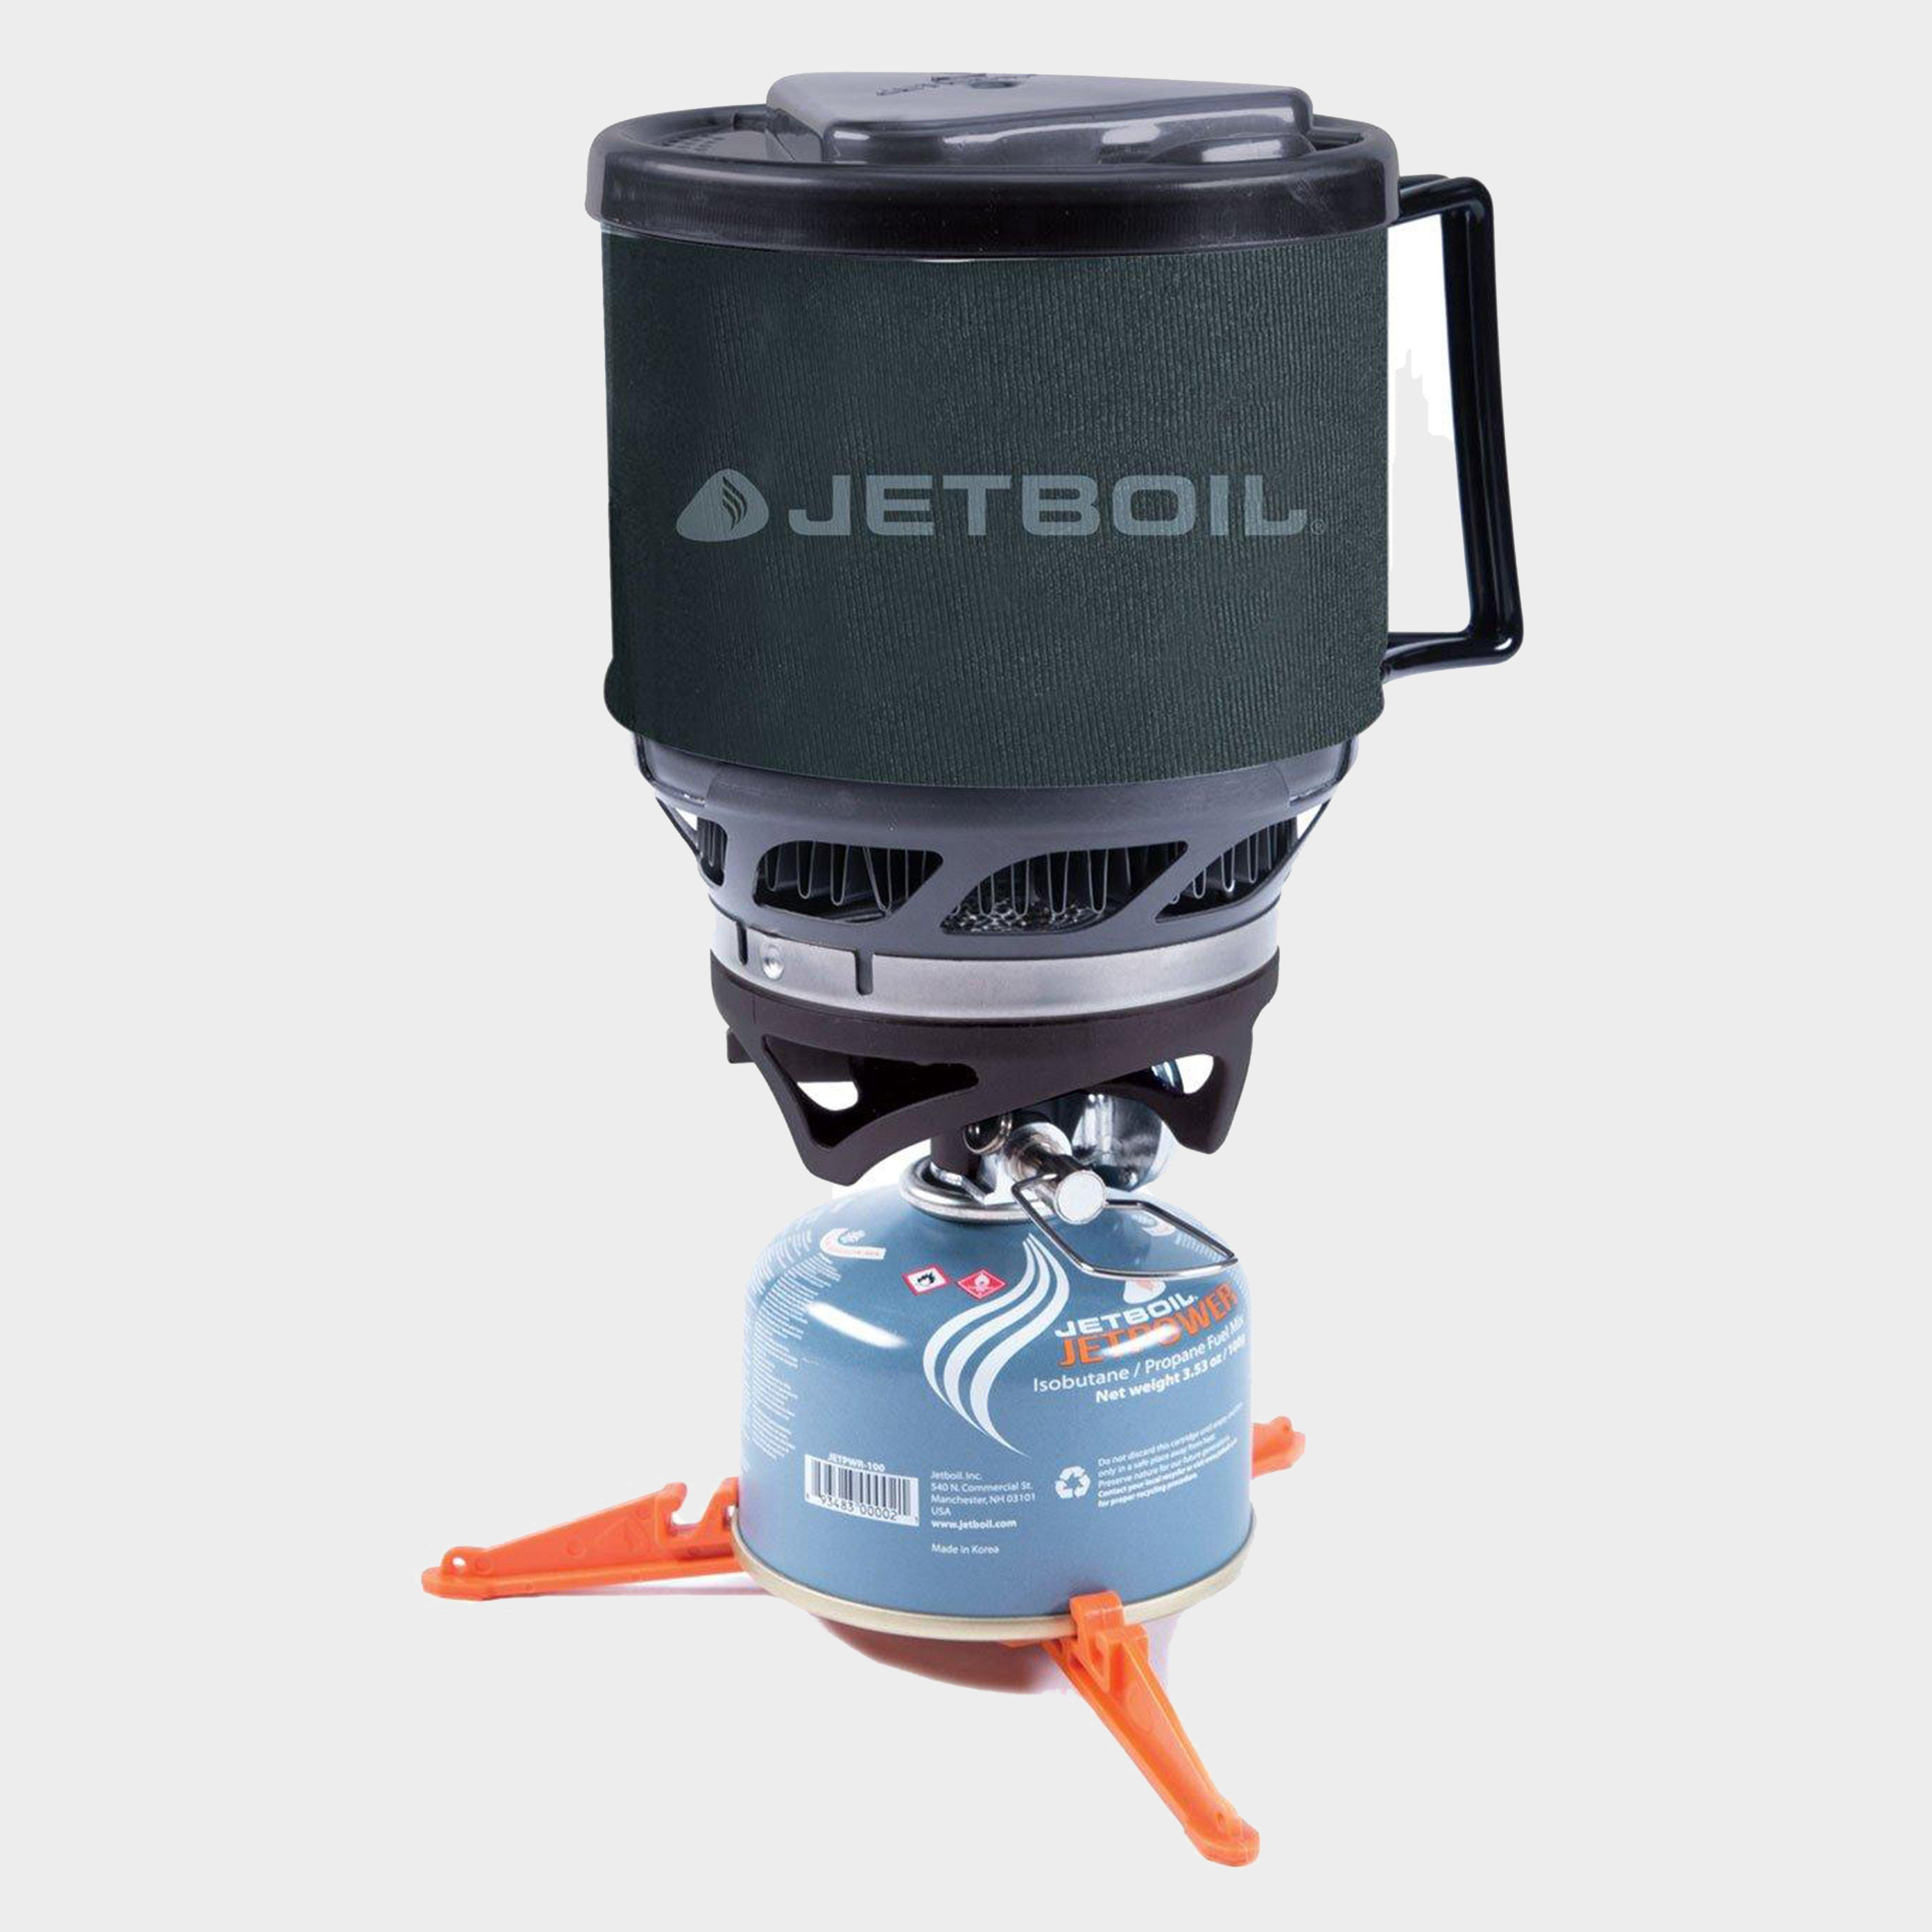 Jetboil Minimo Cooking System Black